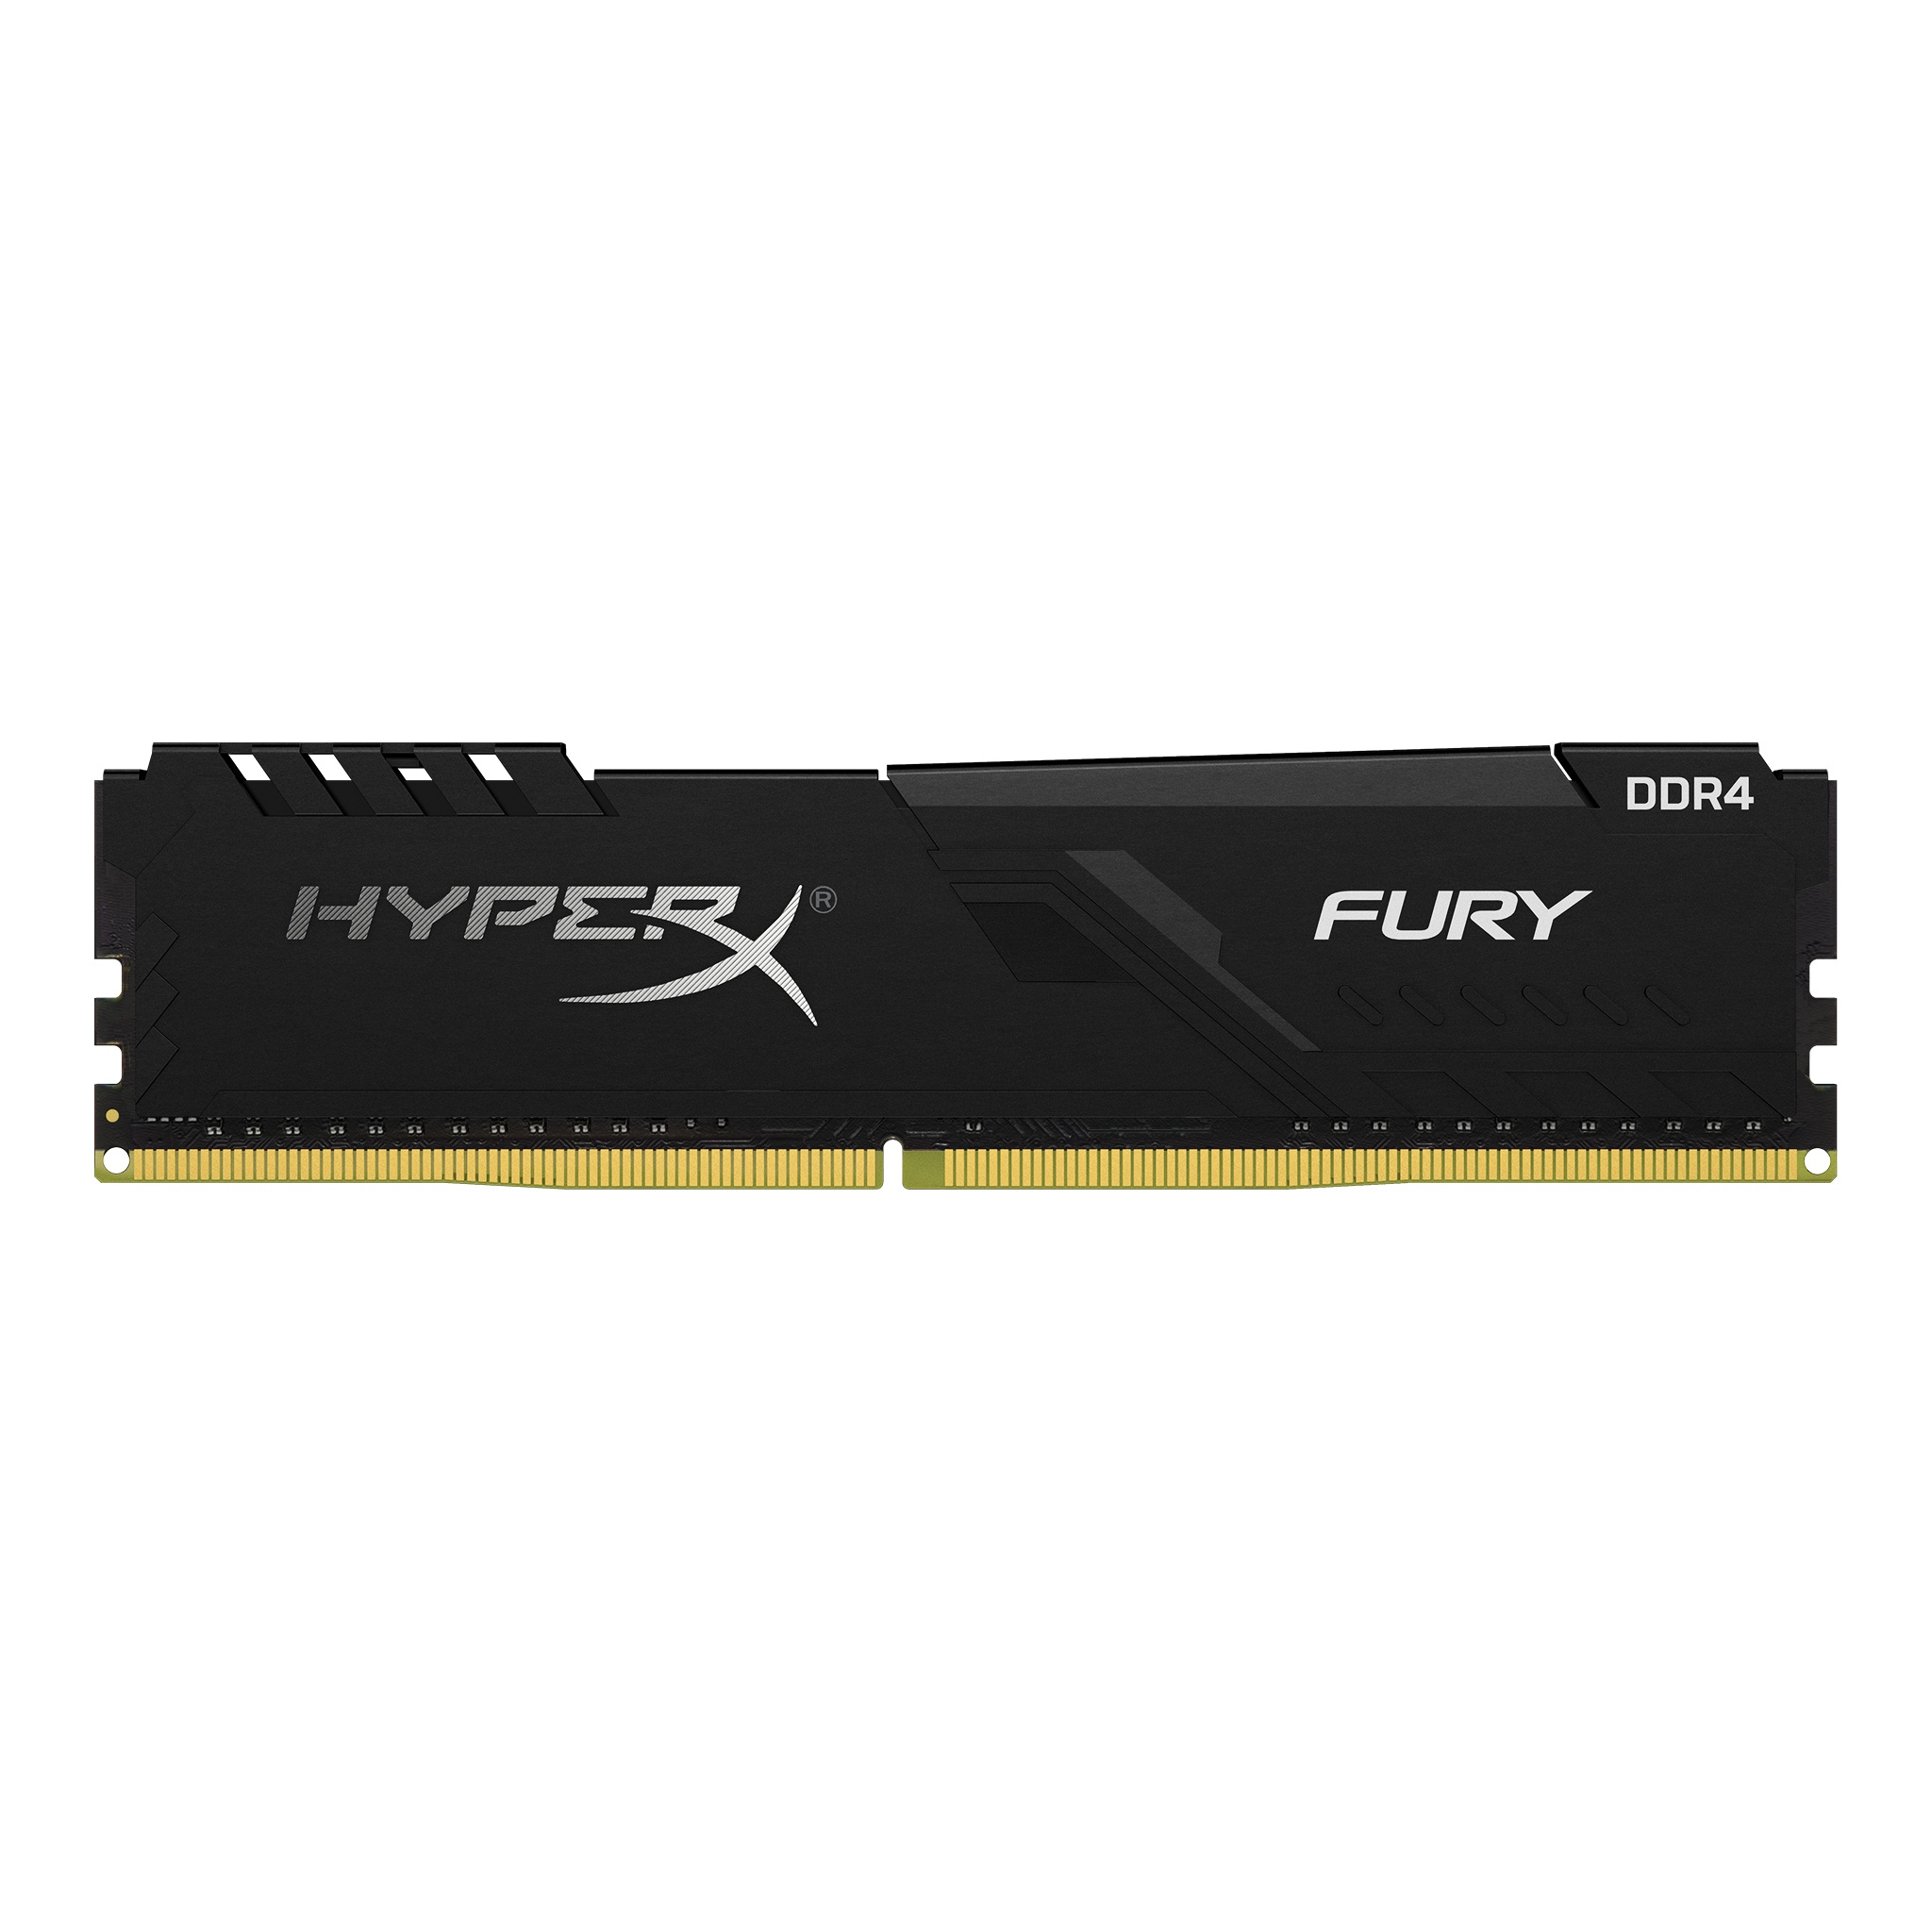 Kingston DDR4 8GB 3200MHz Fury